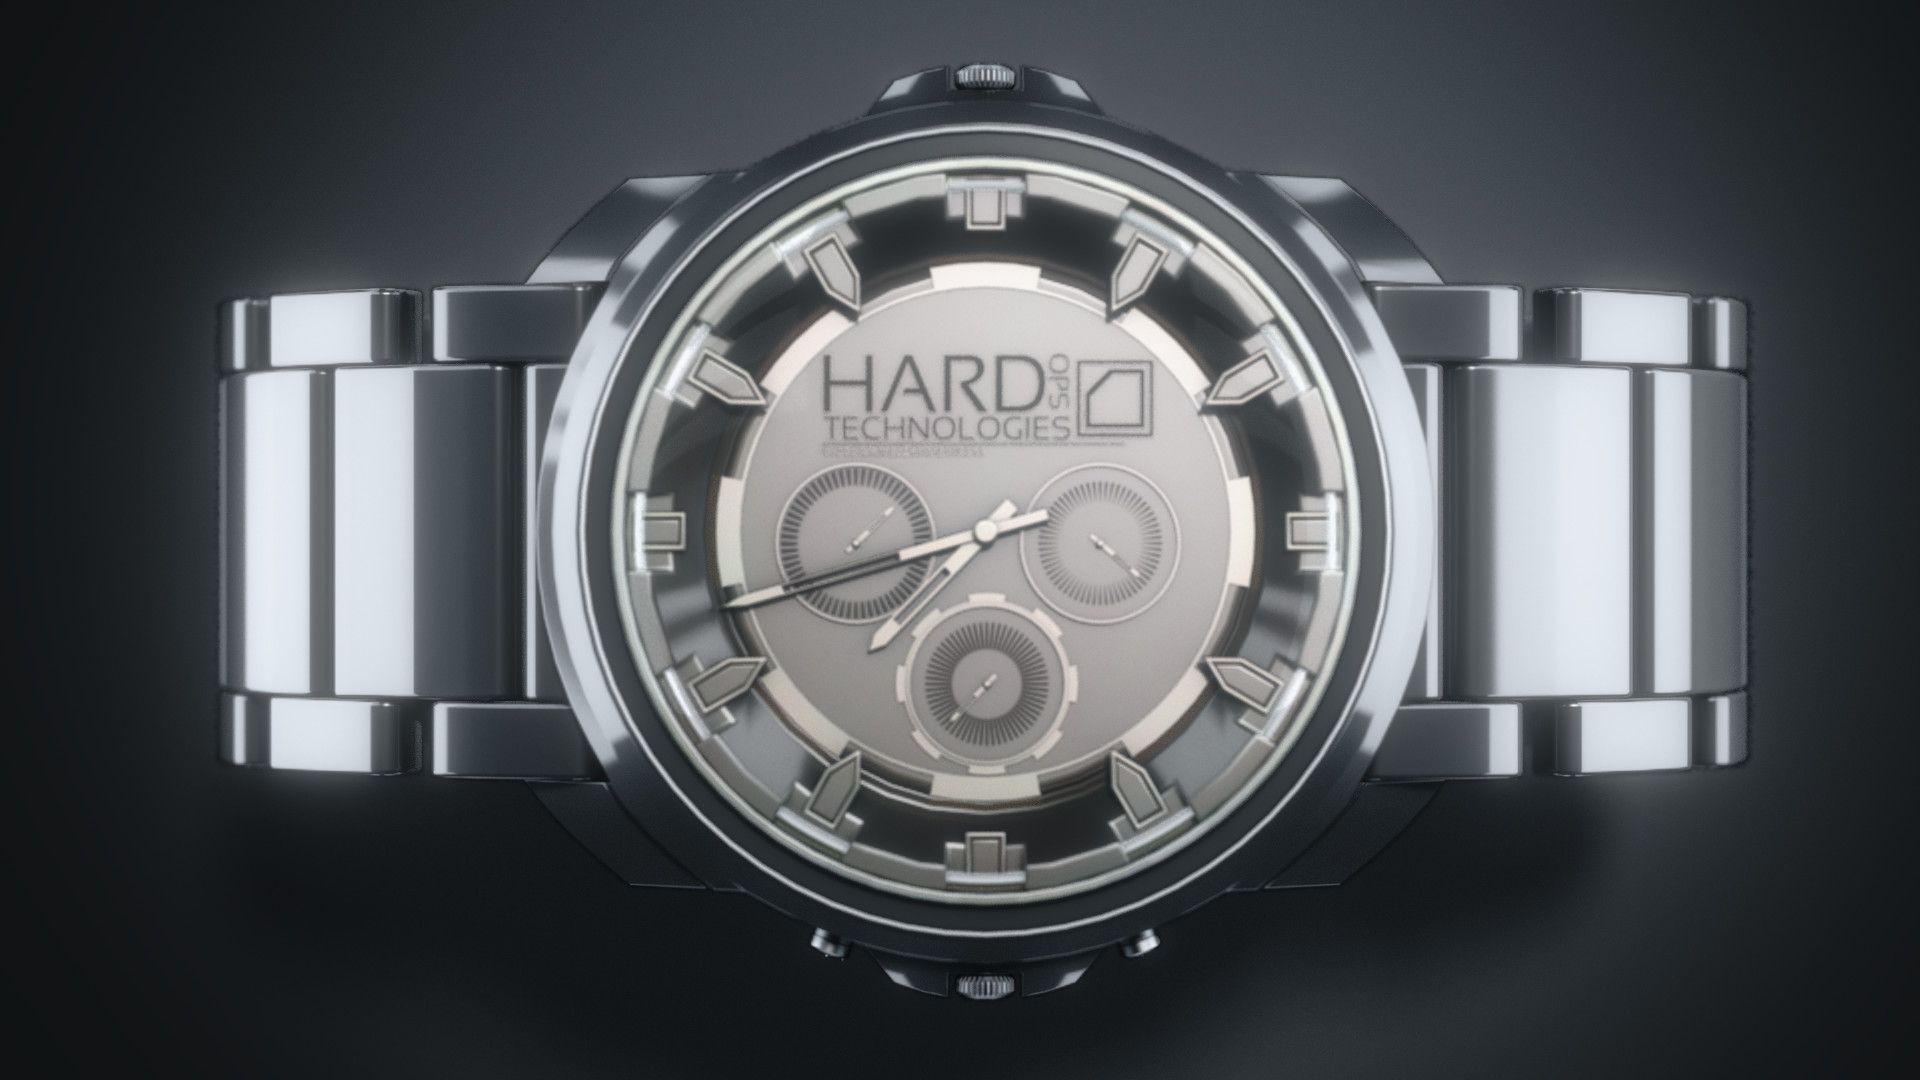 Jerry perkins mx1001 hardopswatch1